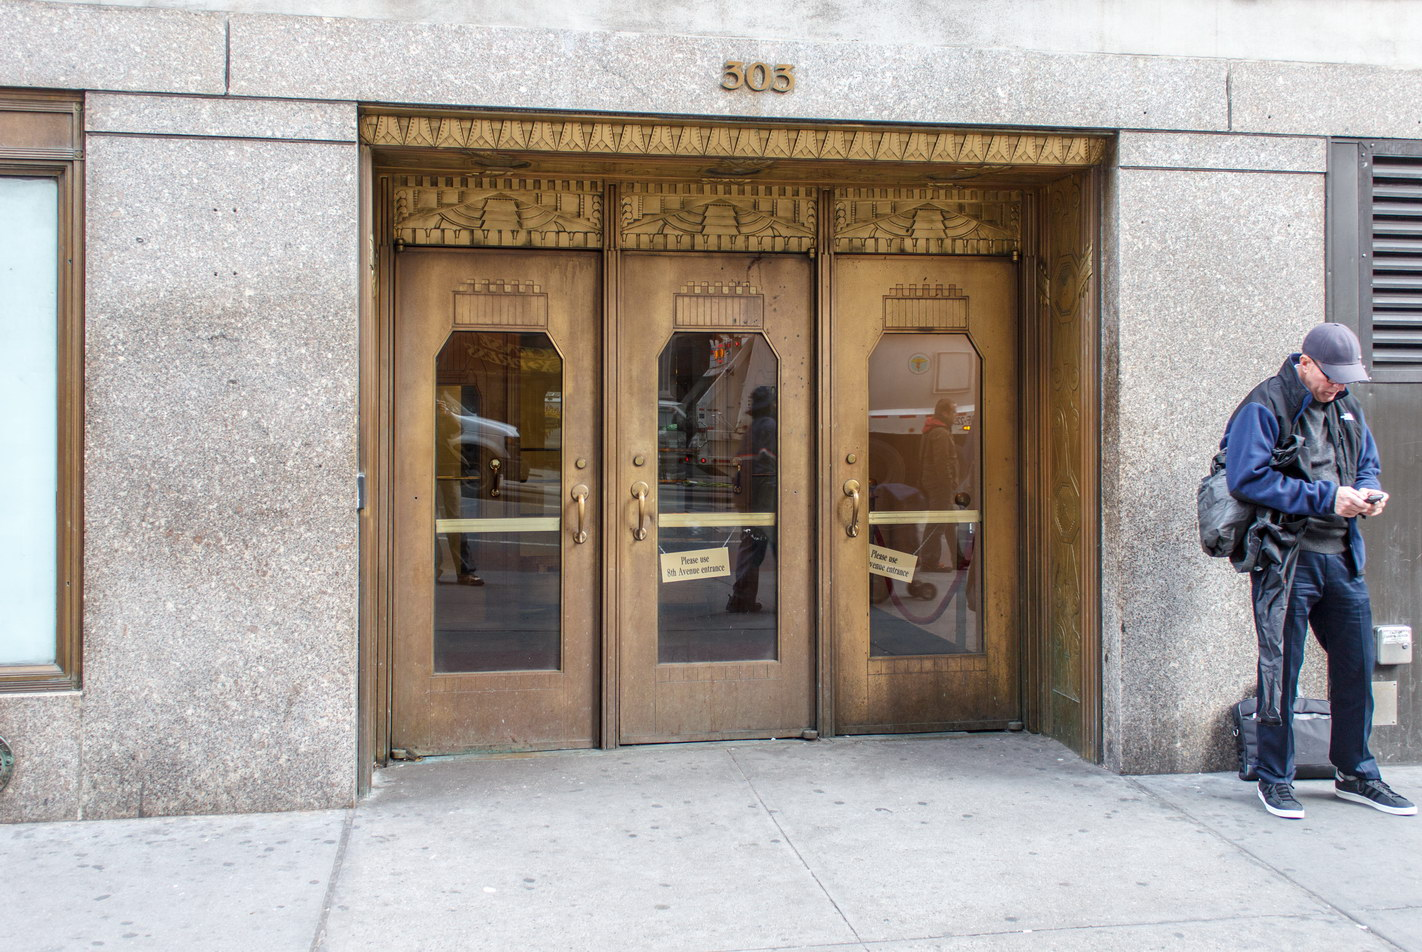 A side entrance (W34th Street).